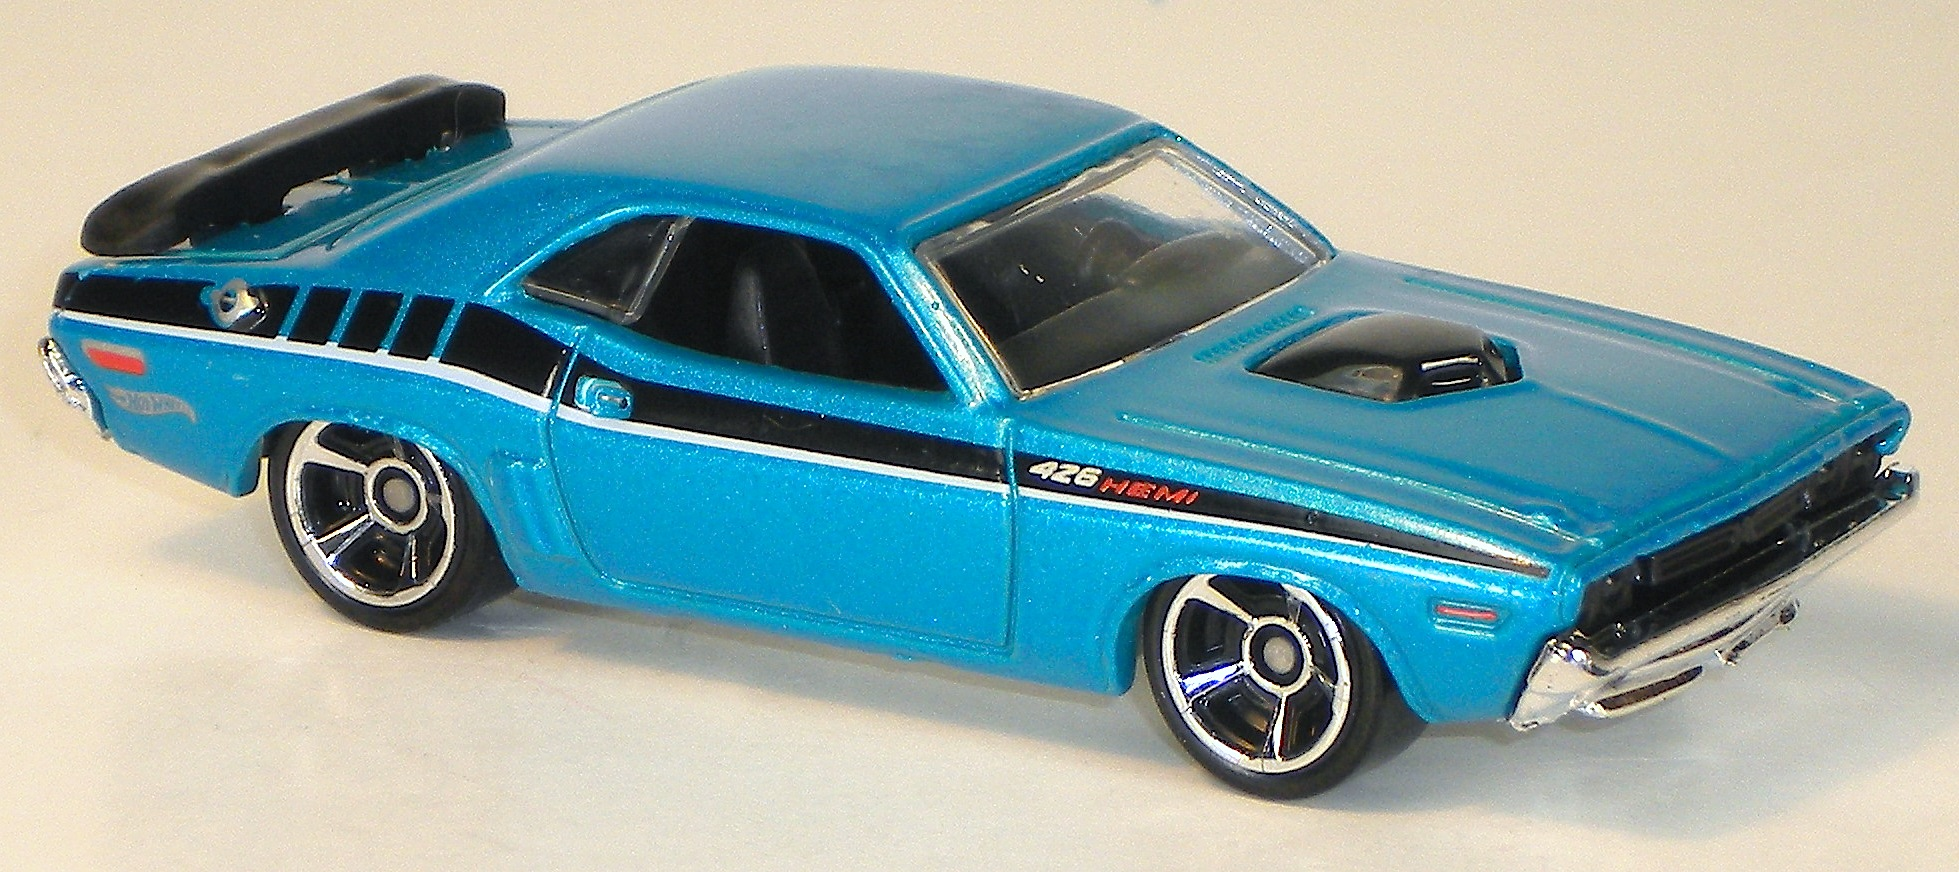 71 Dodge Challenger Hot Wheels Wiki Fandom Powered By Wikia